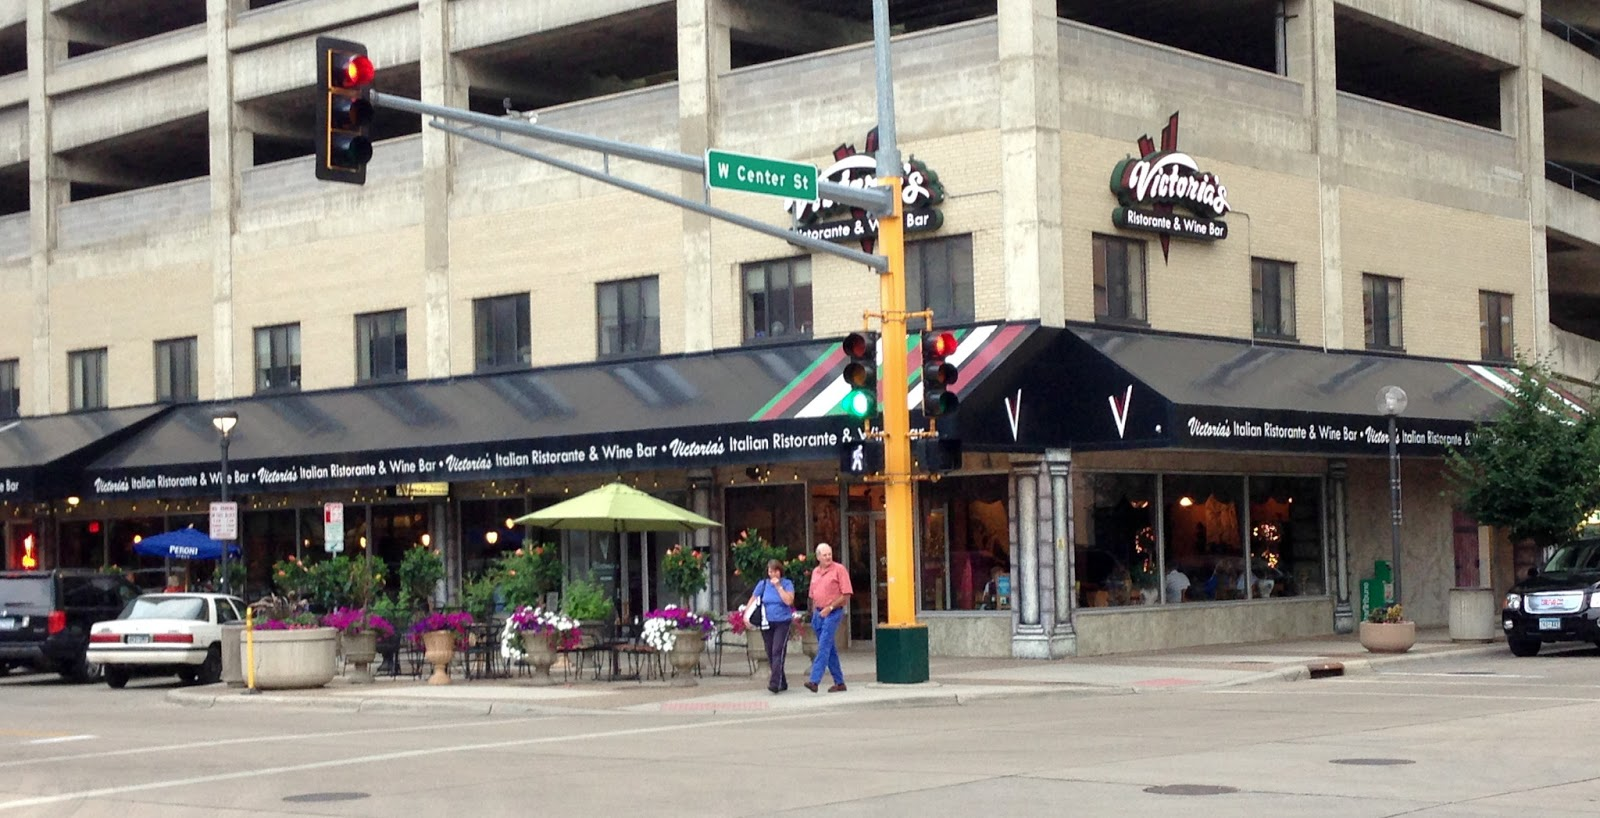 Victoria S Rochester Most Overrated Restaurant